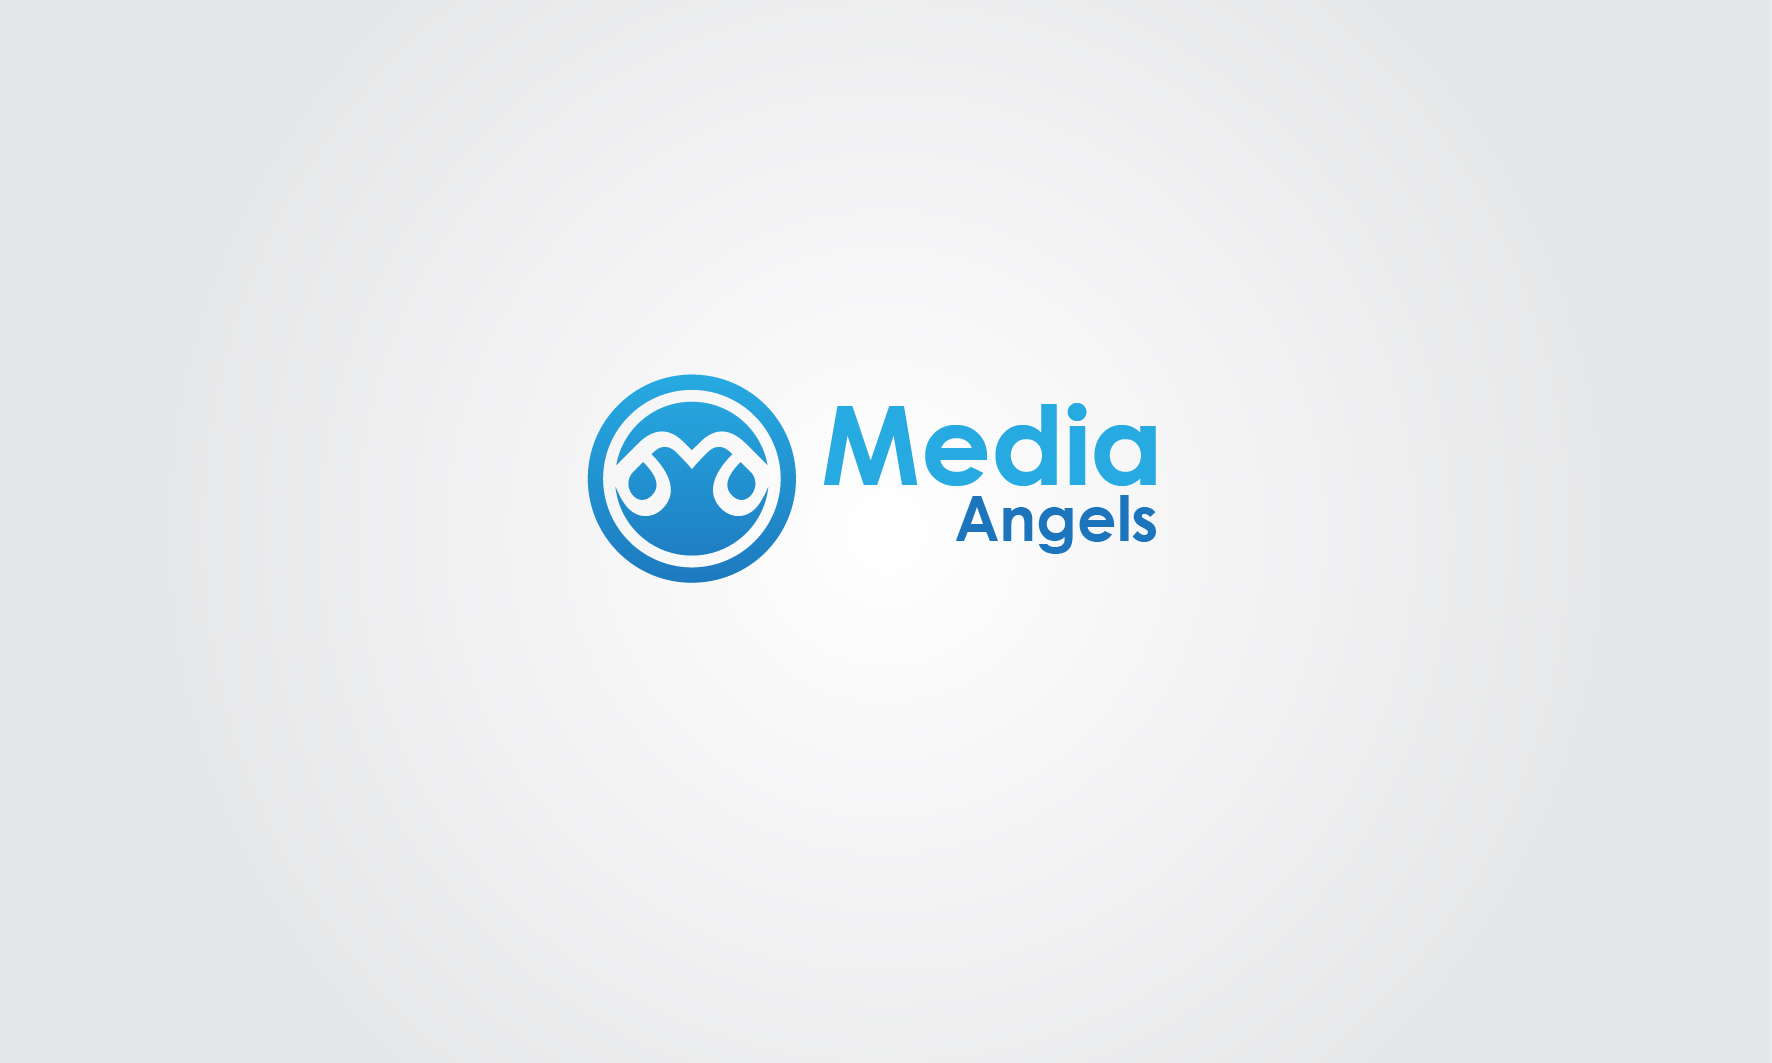 Logo Design by 3draw - Entry No. 216 in the Logo Design Contest New Logo Design for Media Angels.